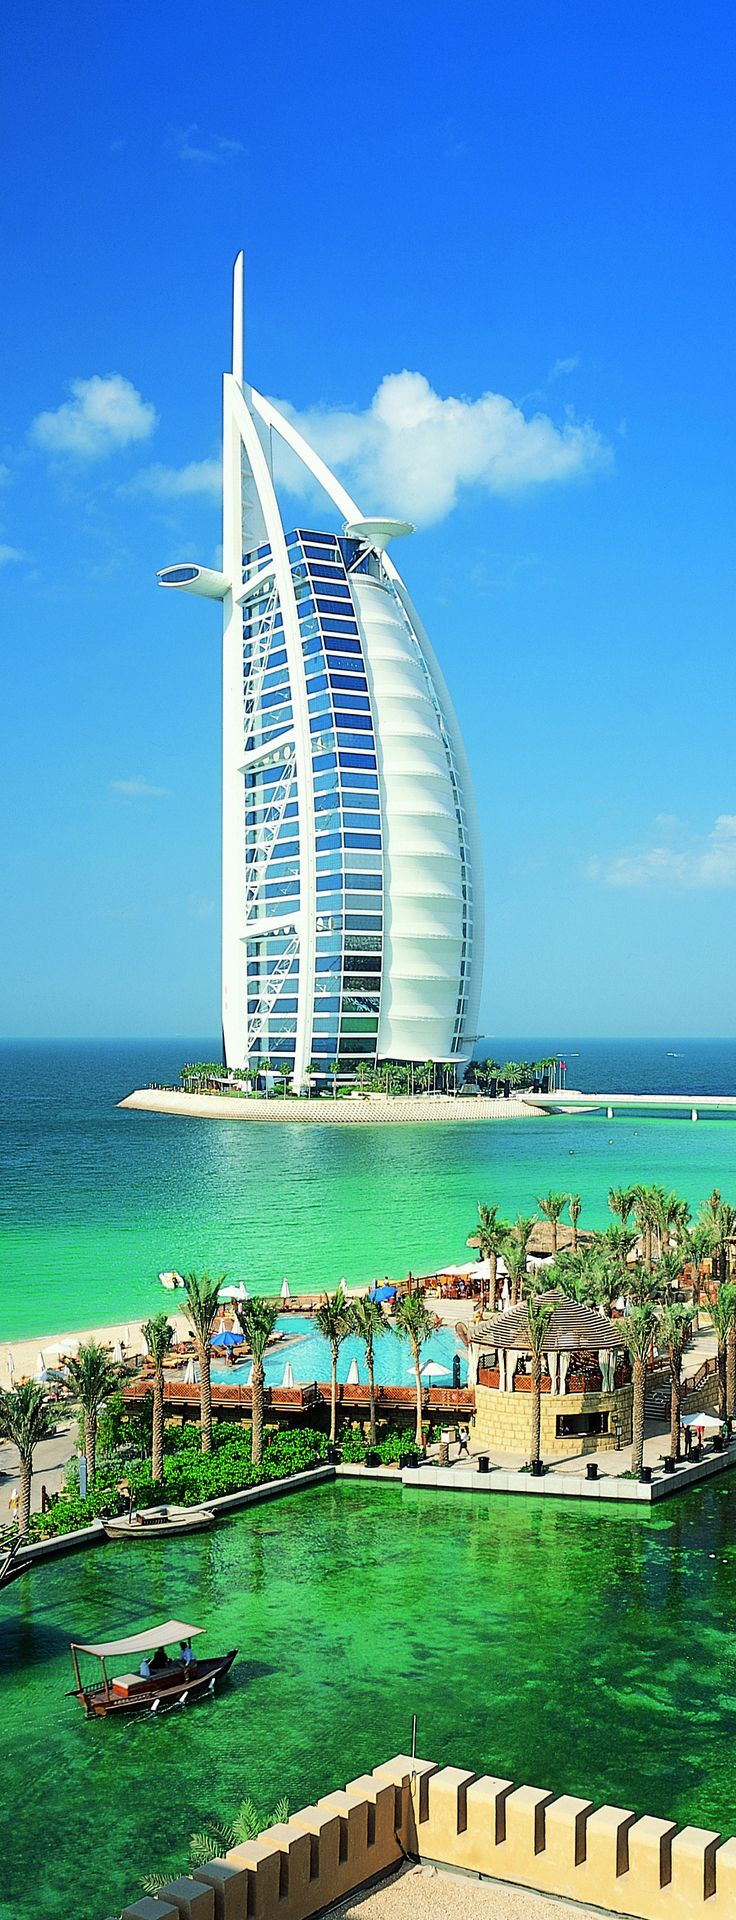 Best 25 burj al arab ideas on pinterest emirates hotel Burj al arab architecture